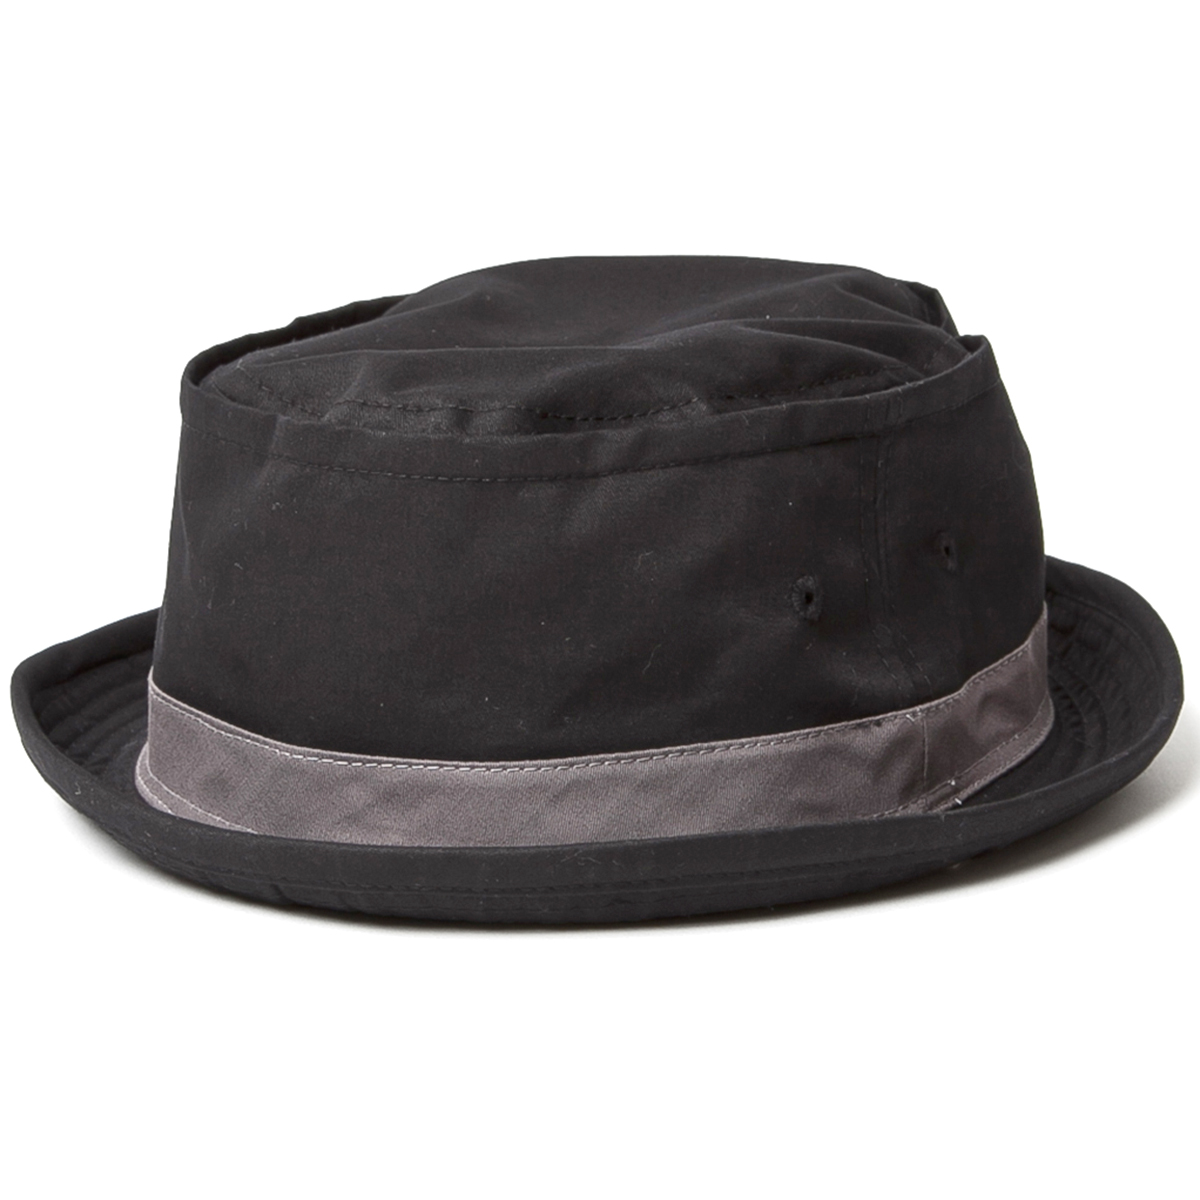 Classic pork pie Hat! Solid color of hat world champion • 3 colors-Cotton Pork Pie Hat ( コットンポークパイ Hat ) mens Womens unisex-Hat pork pie-テラピンチ NY